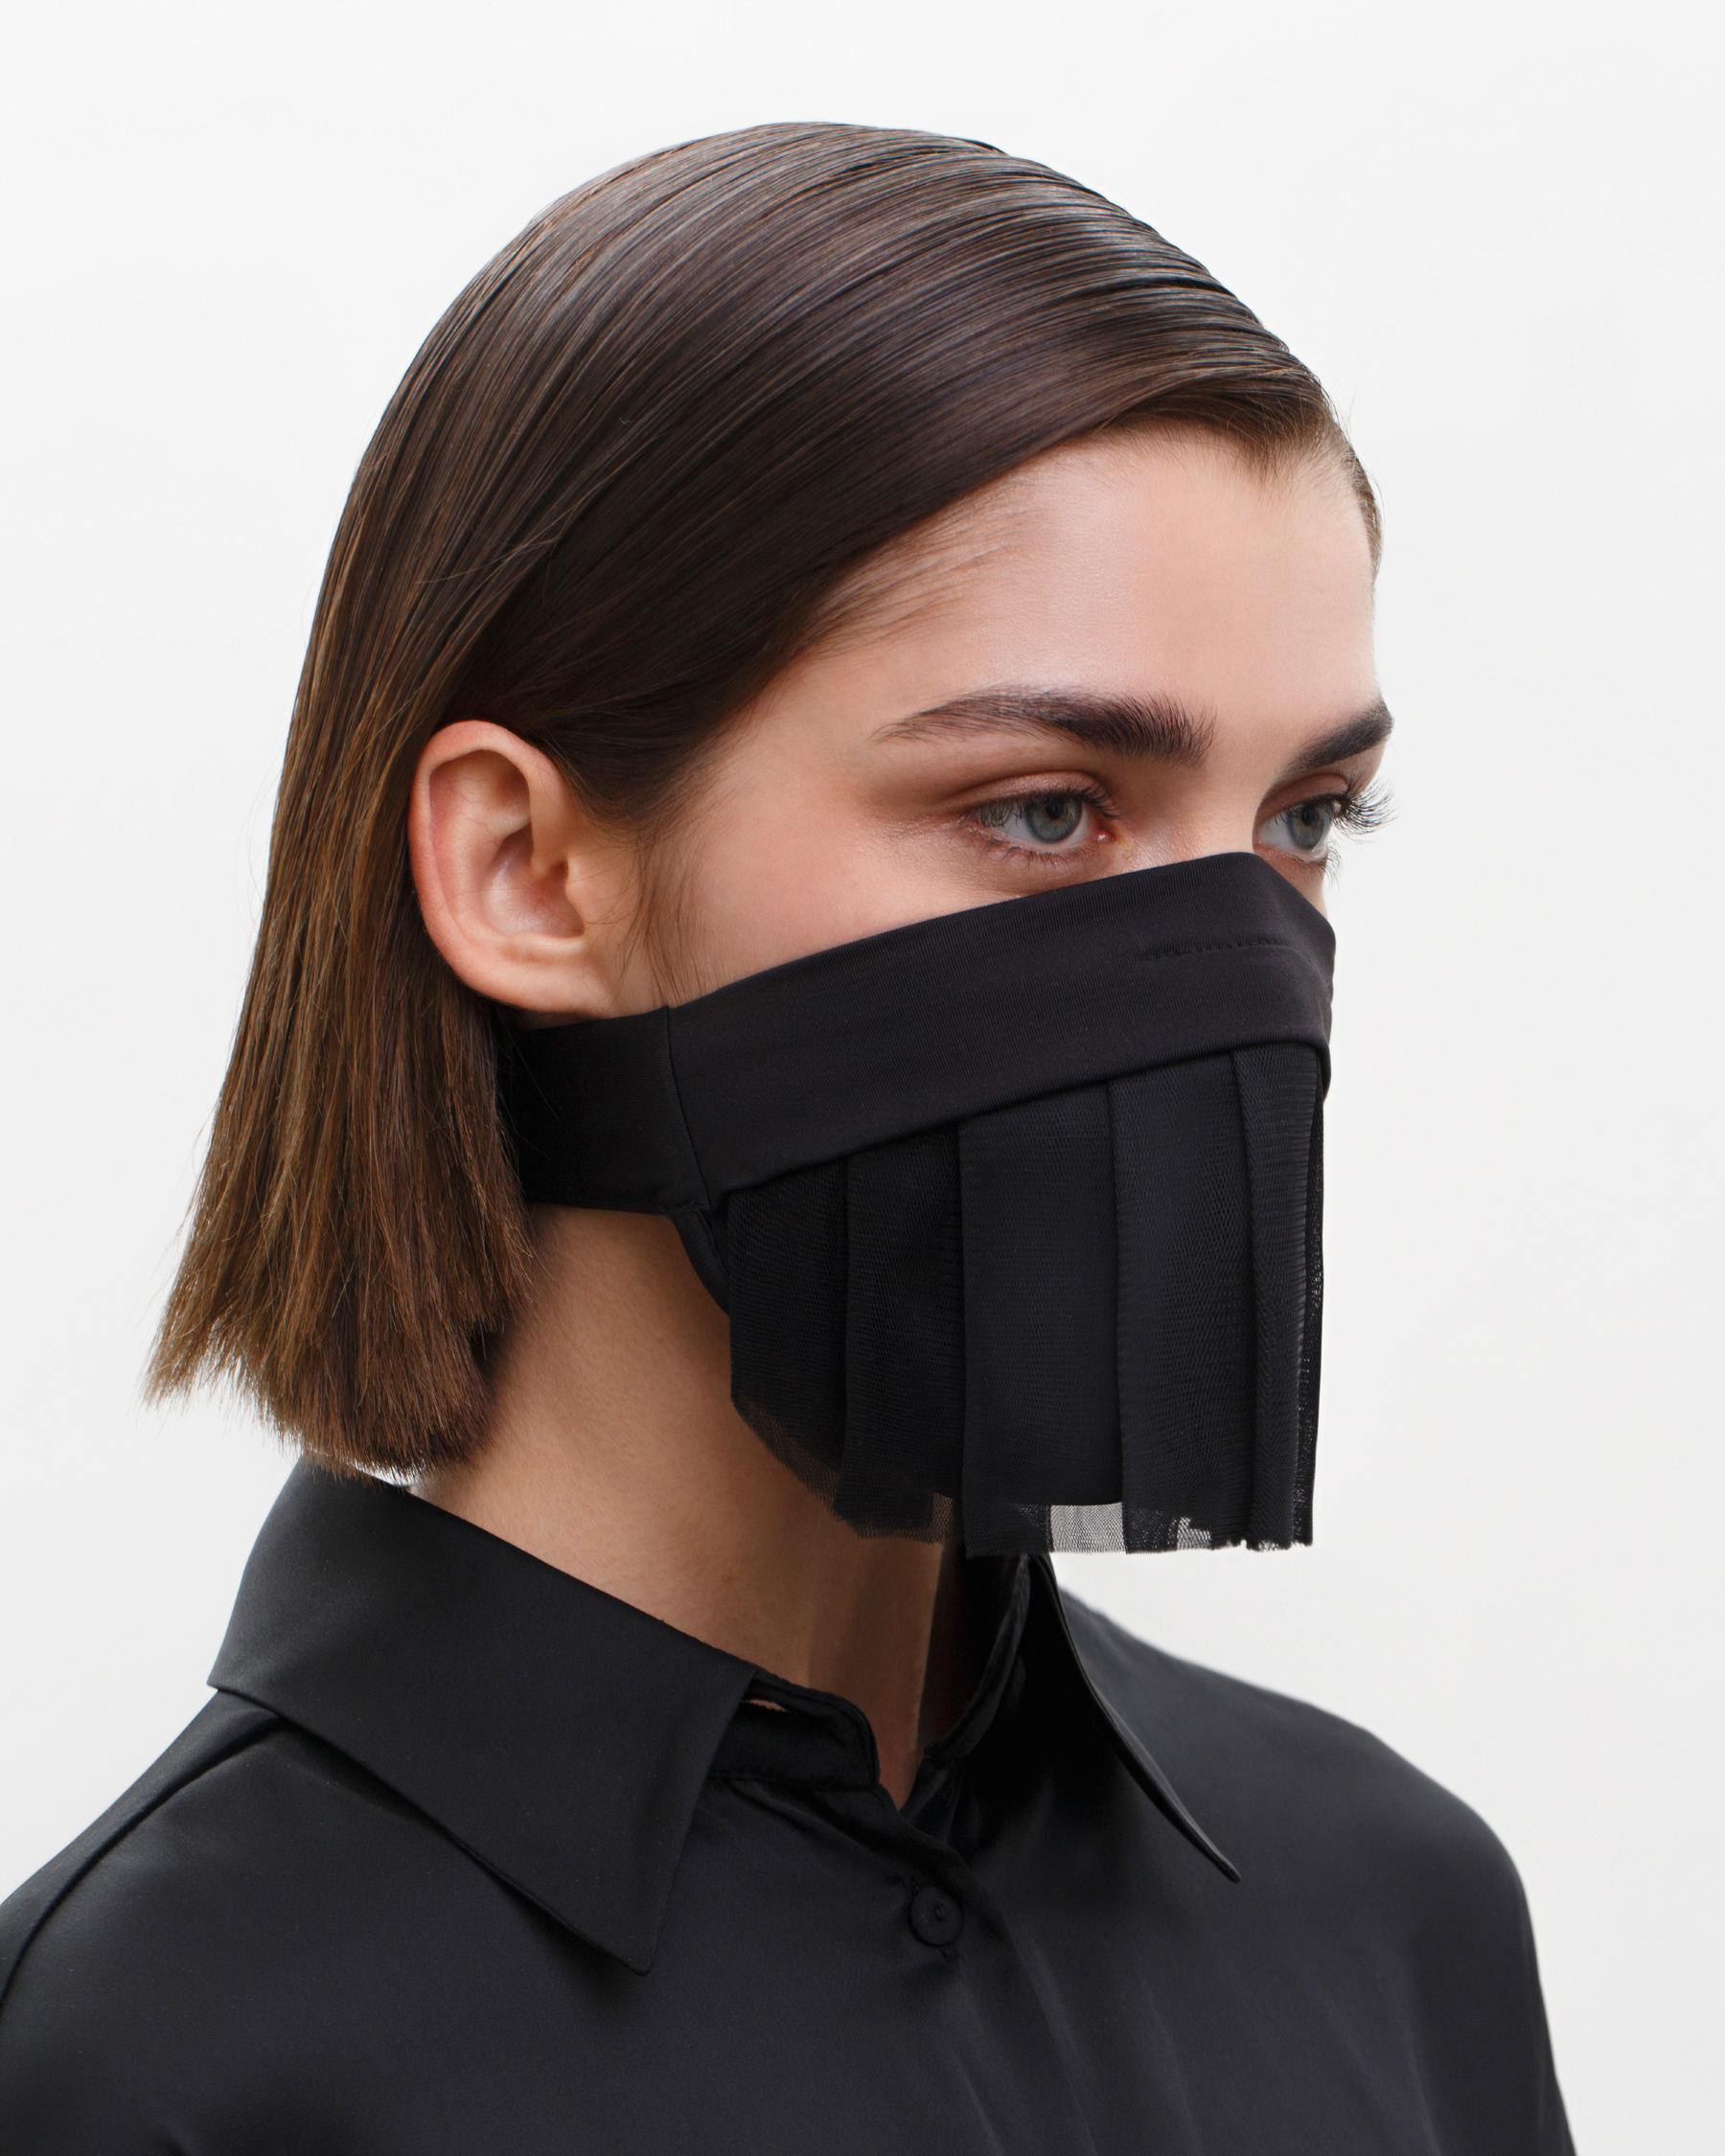 FAKBYFAK  Couture Face Covering with a Pleated Veil, Ear Strap-Free. The FAKOUT. Black Code: FBF-42104-01